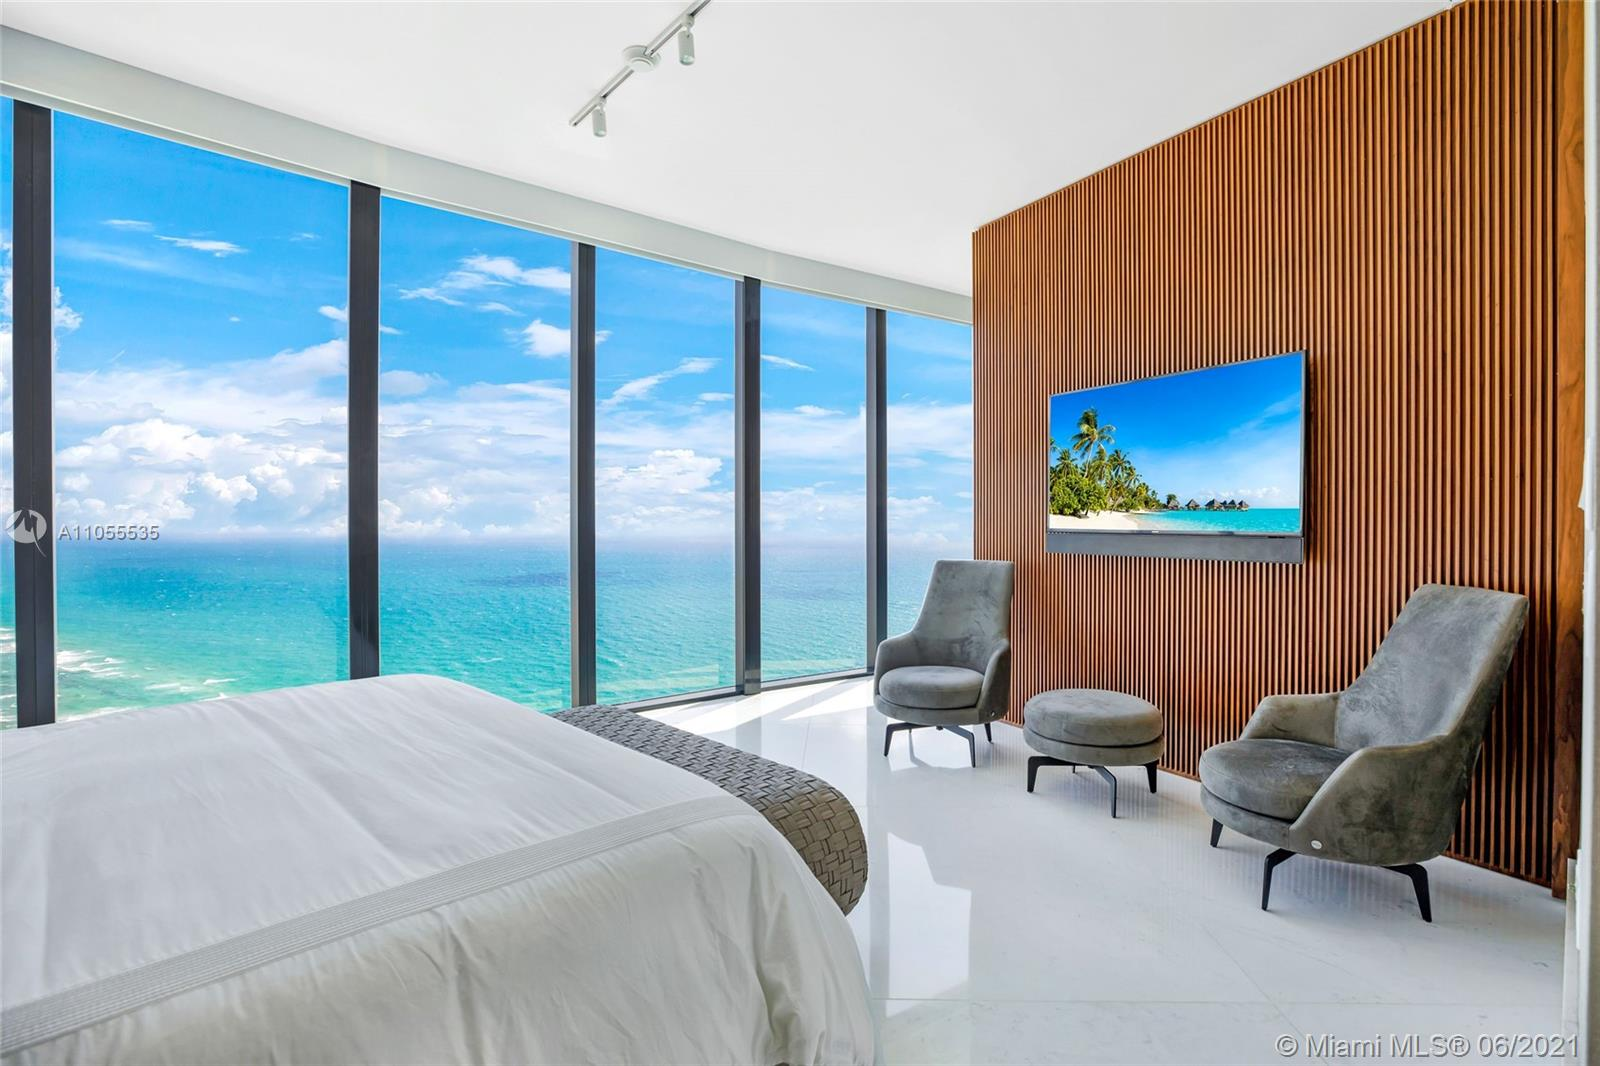 BRAND NEW & Never Lived in 4 Bedroom Direct Oceanview Sky Villa at Porsche Design Tower. Unit was just finished now on June 2021. Huge Balconies with Summer Kitchen and Private Swimming Pool + 3,555 sqft of interior space. Carrara Marble floors, Savant Automation Home System, Bank & Olufsen Sound System, Custom Mirror TV, Ornare Custom Walk in Closets, and Blackout Shades in all the Bedrooms. This residence features an exquisite Designer Poggenpohl kitchen with Miele appliances. A 2 Car Garage connected to your residence gives ultimate privacy with a lift to bring your car up to the 43rd floor. The building amenities are unmatched featuring a full service Restaurant, Lounge, Spa, Pool and Beach with Service, State of the Art Game room and Club Room and so much more. Easy to Show.